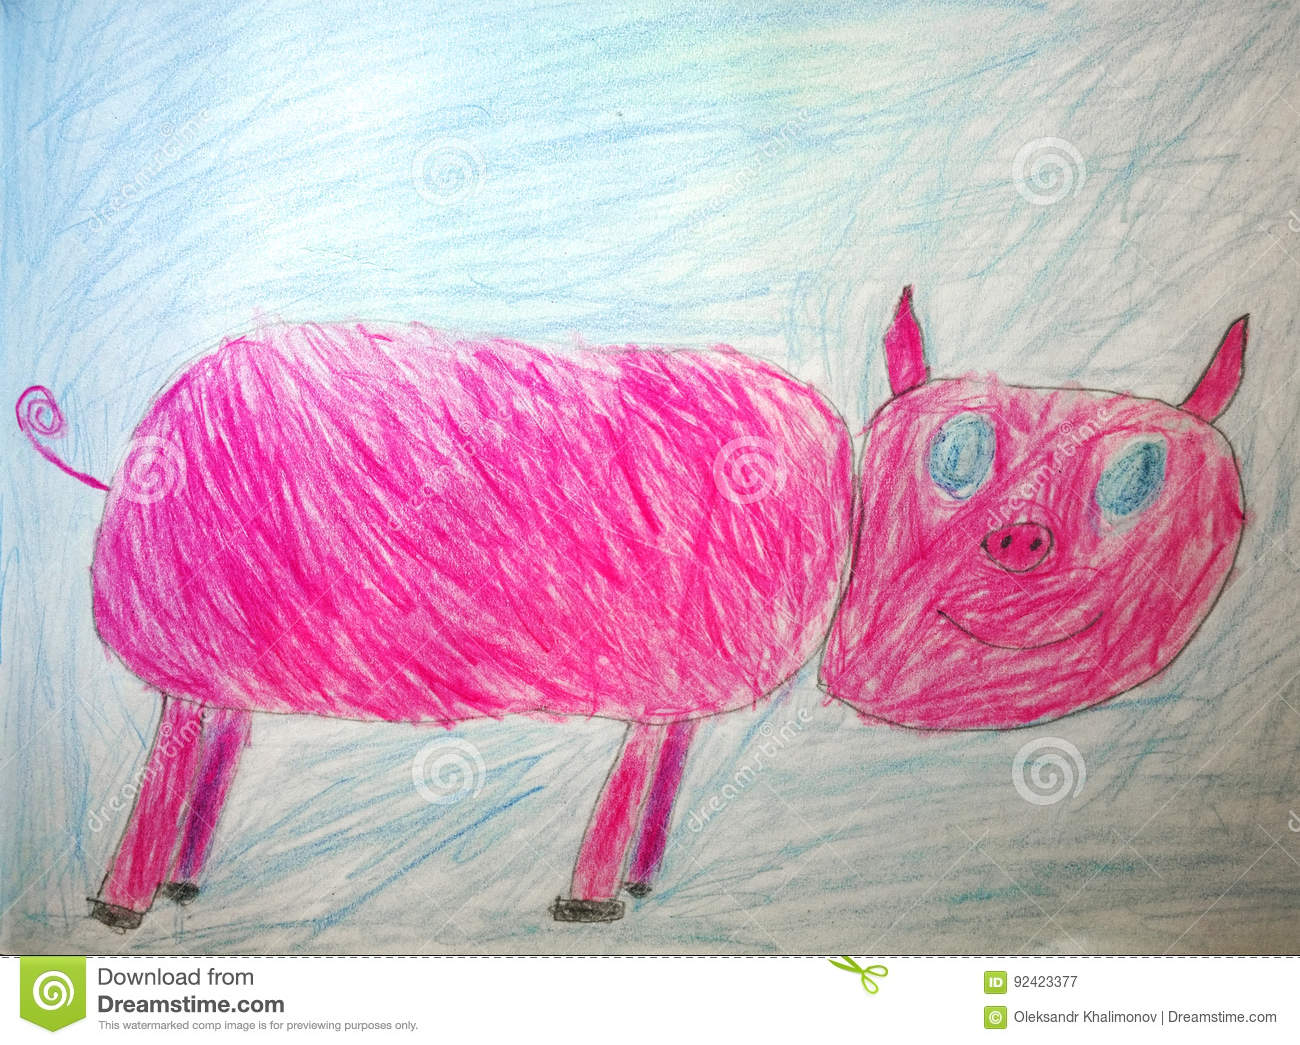 Childrens pencil drawing of a pink pig on a blue background